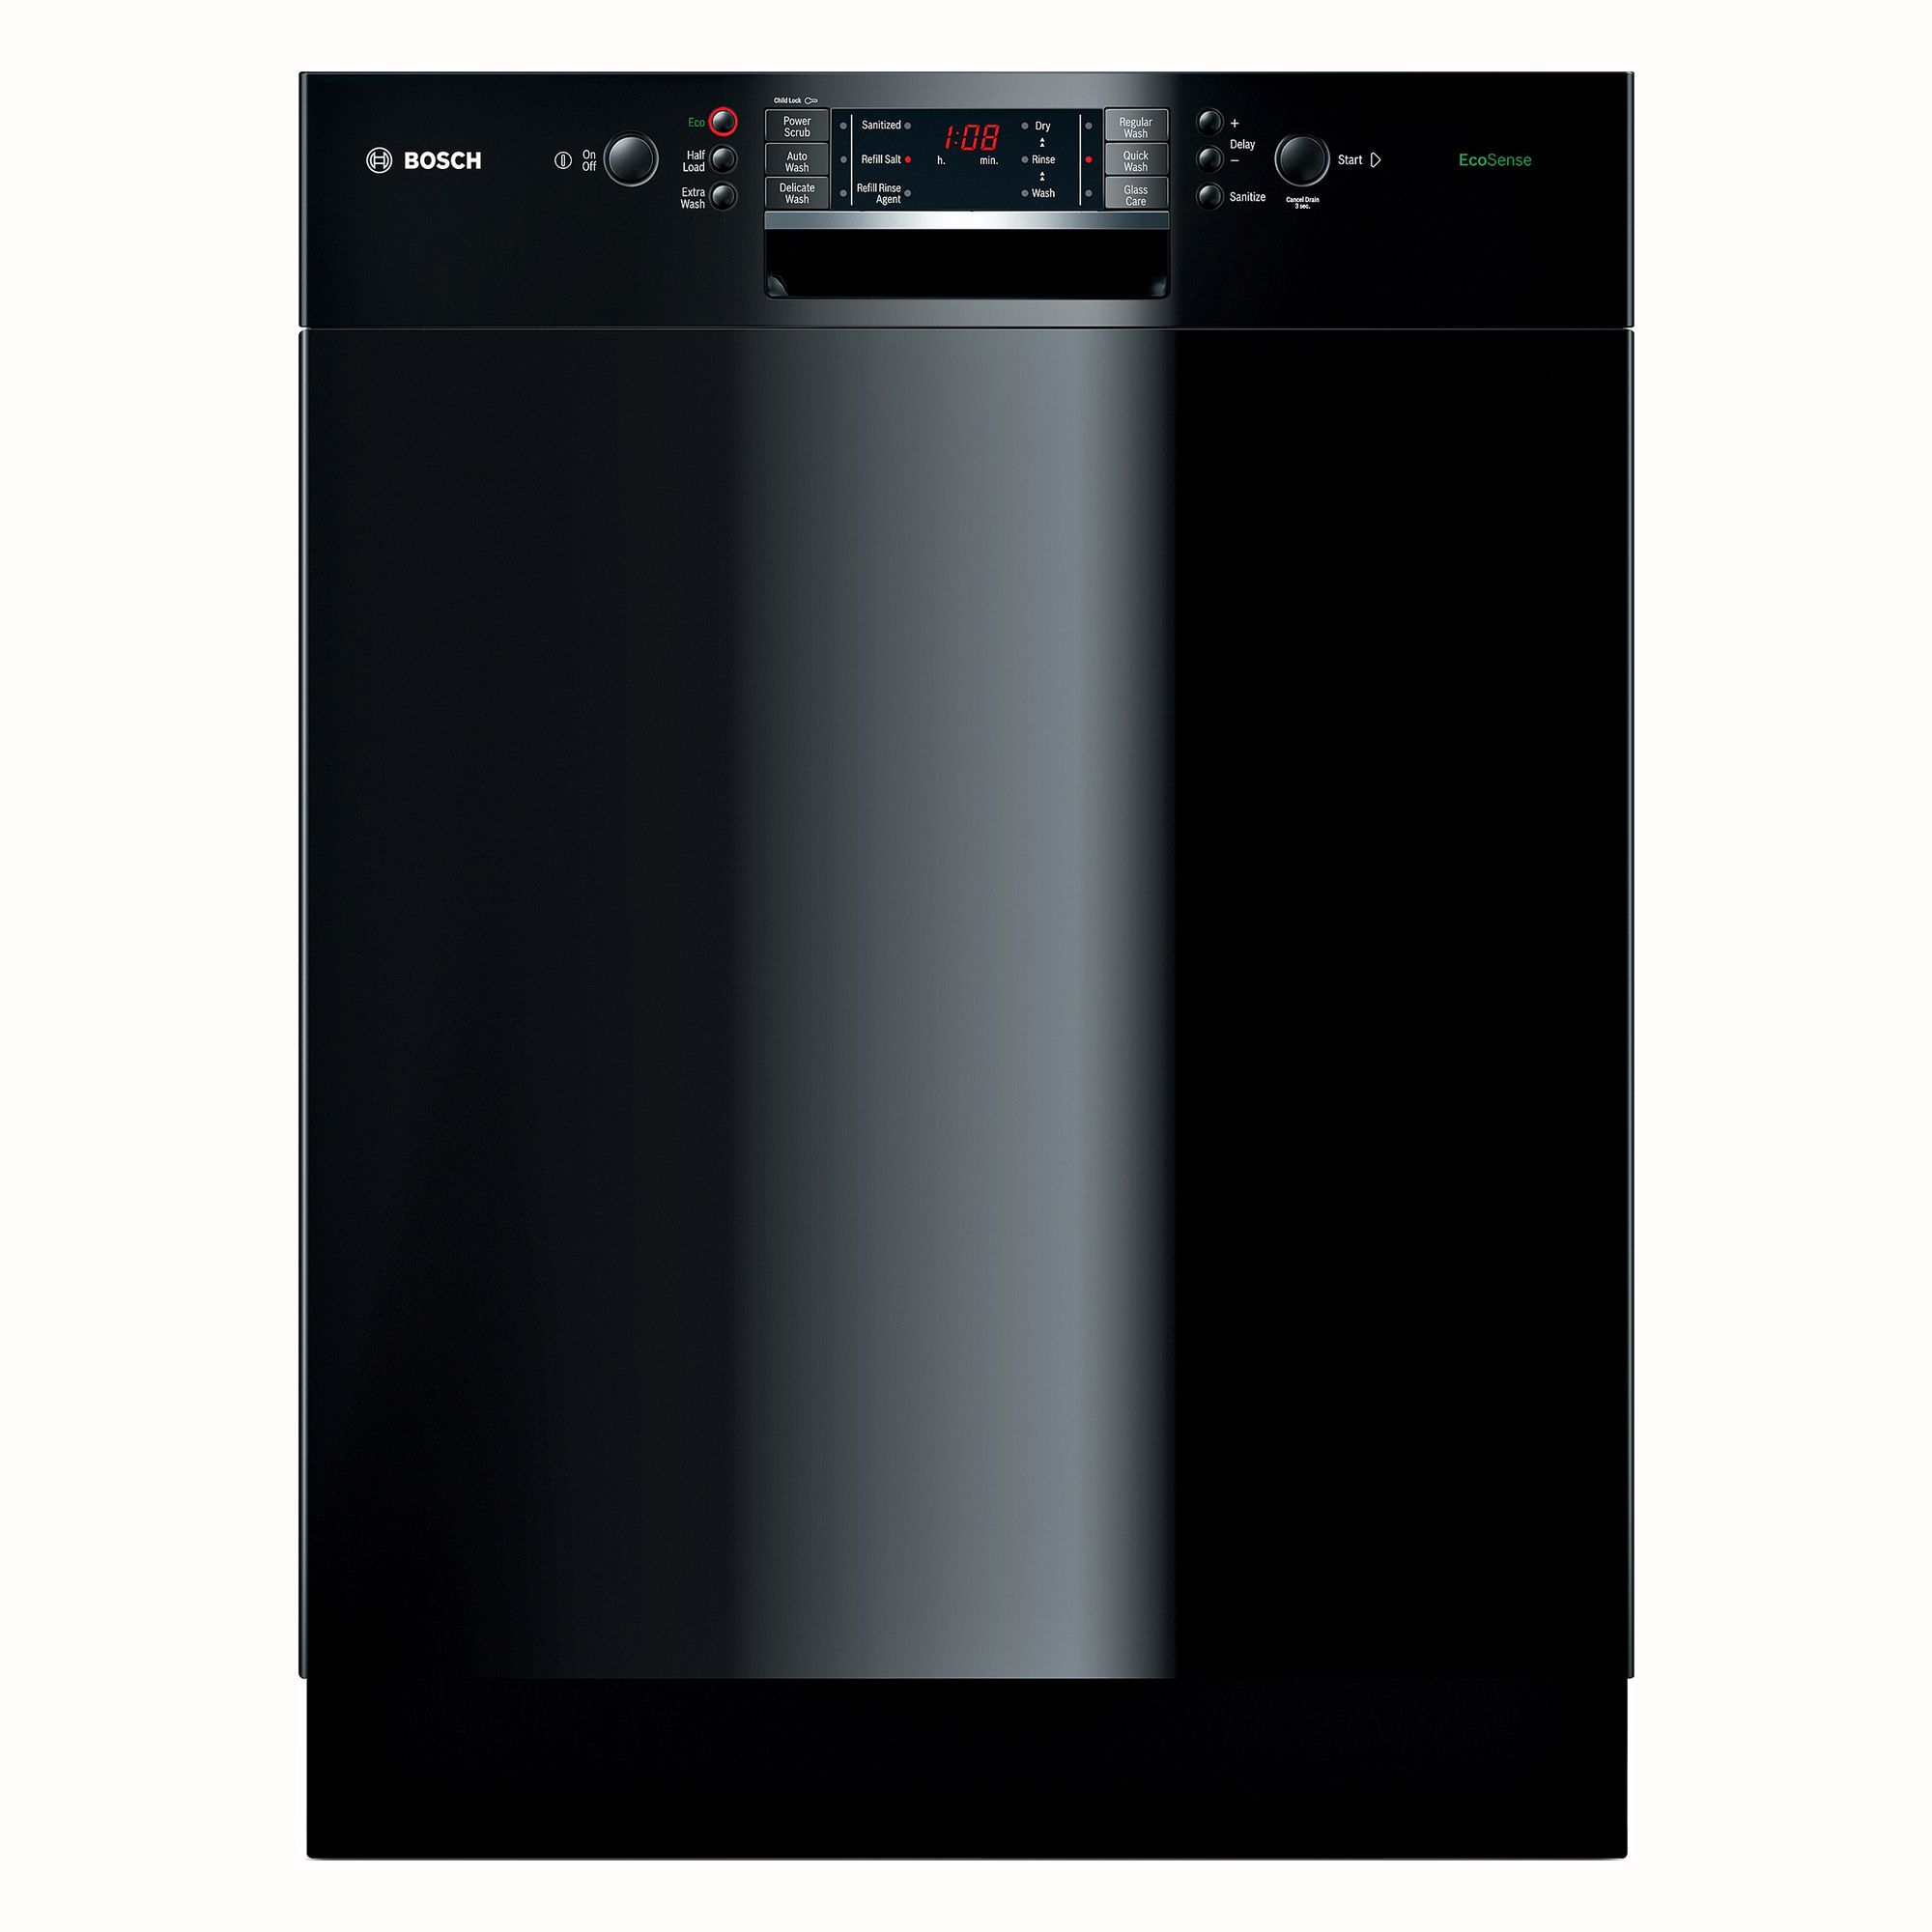 Bosch  24'' Built-in Dishwasher ADA-Compliant  ENERGY STAR®